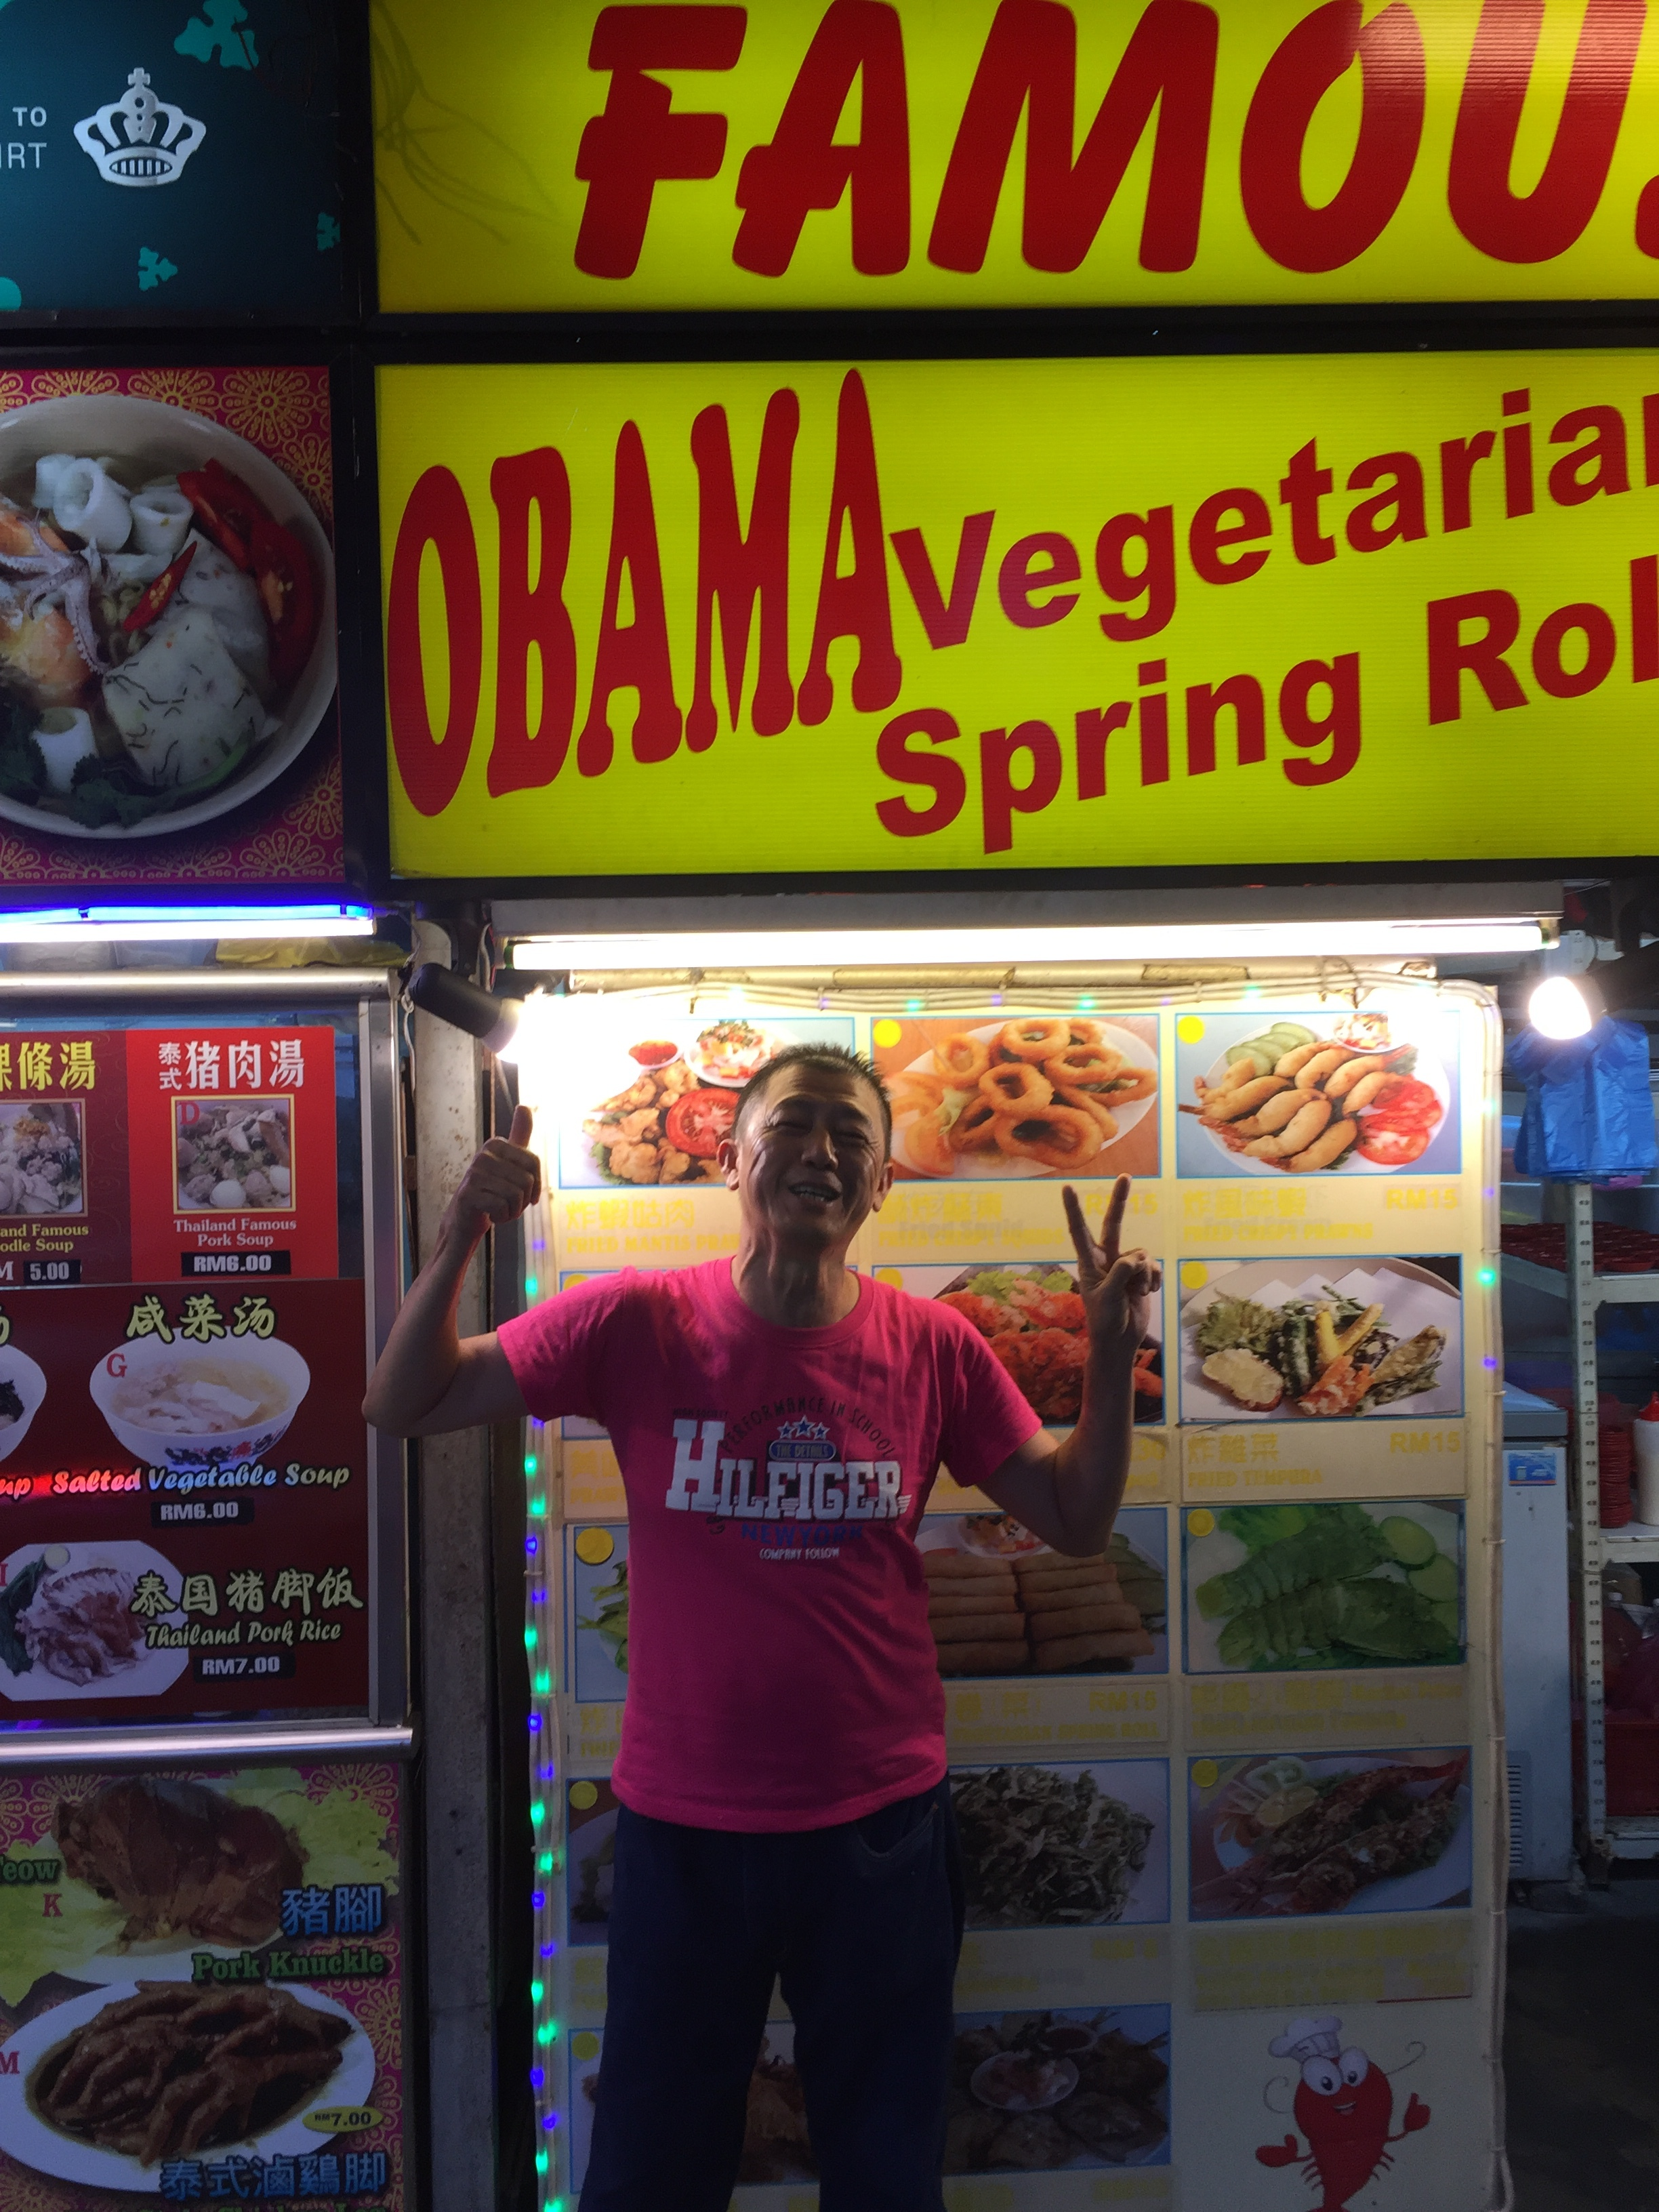 Everywhere we go, people love Obama. I imagine the same enthusiasm may not hold as well for our new president.